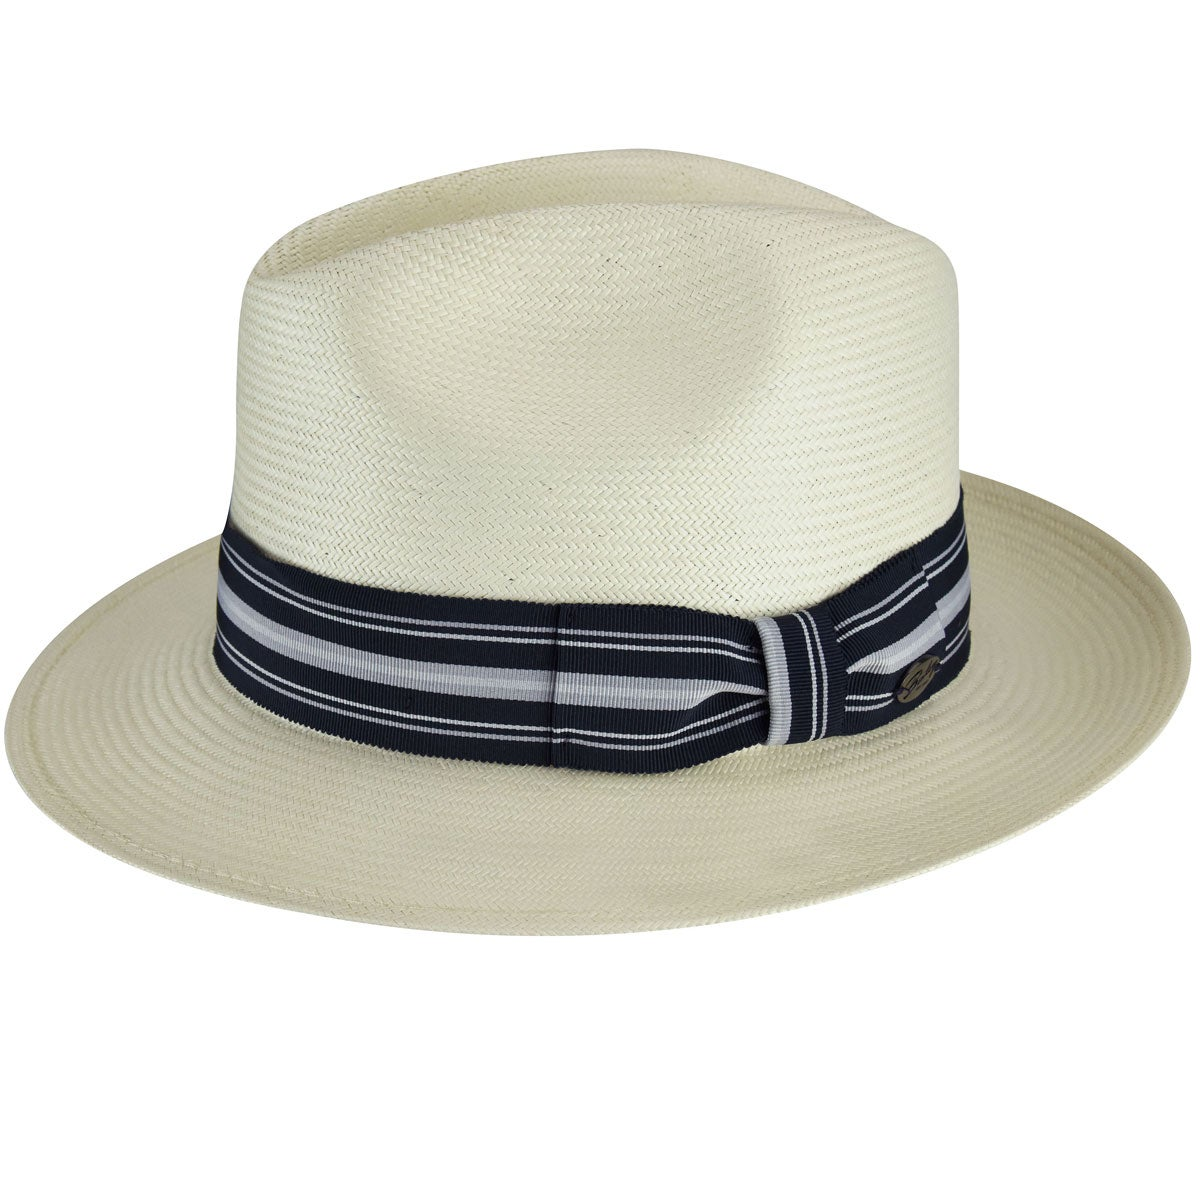 1930s Mens Hat Fashion Creel Litestraw reg Fedora $120.00 AT vintagedancer.com